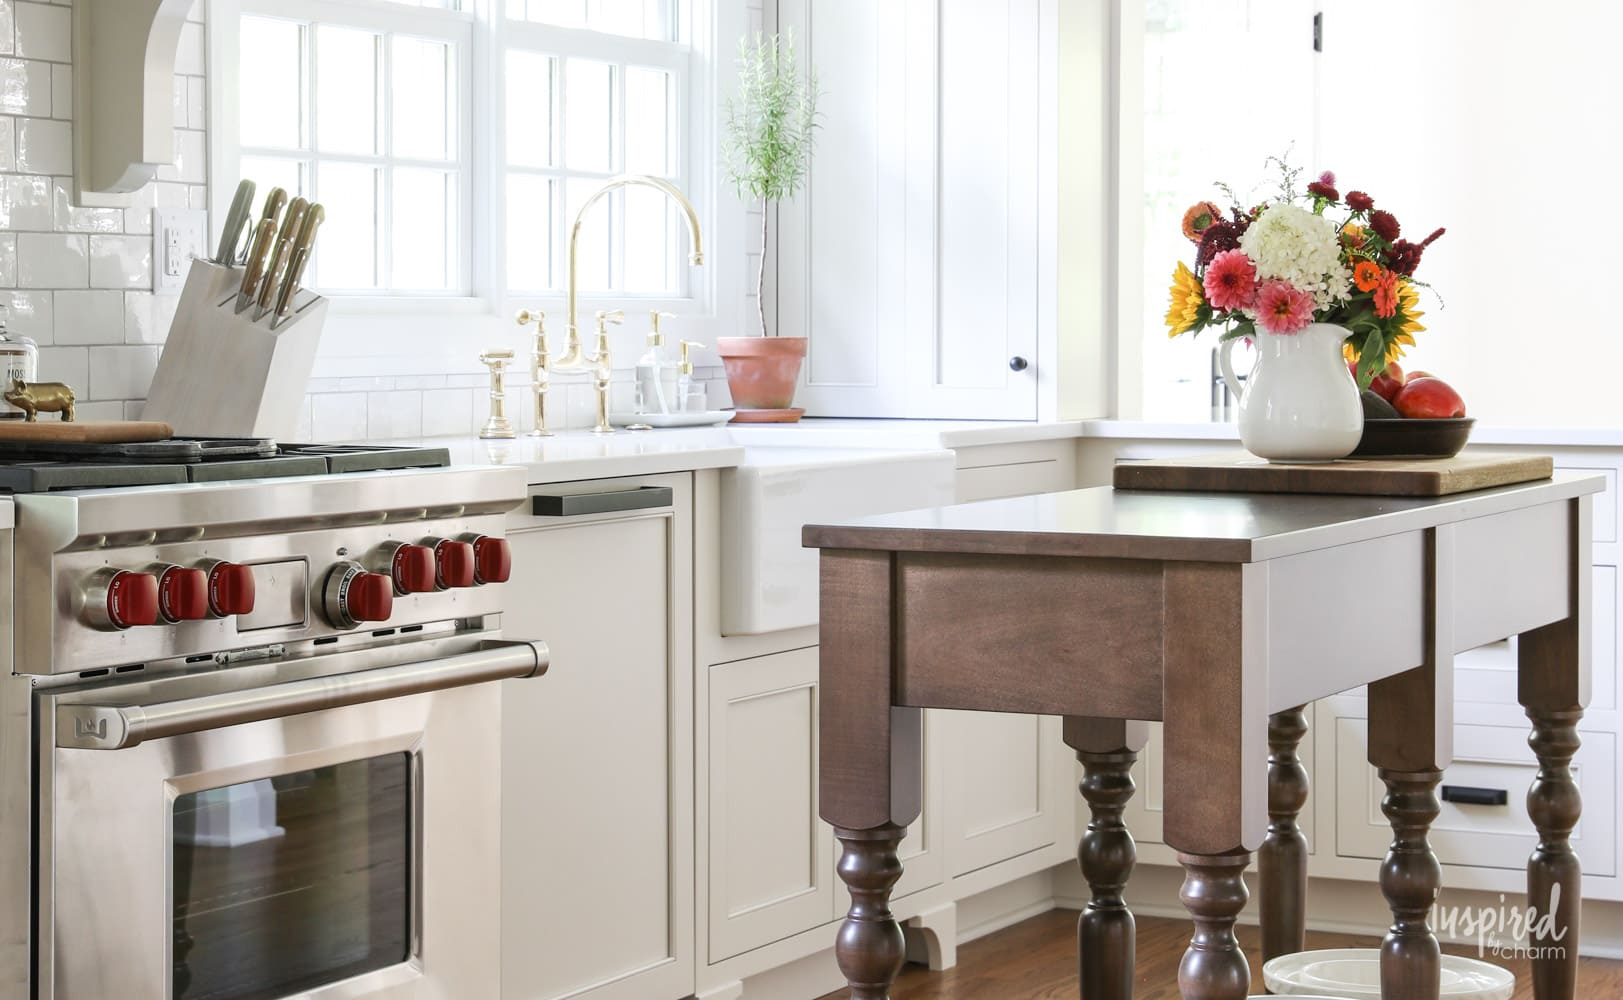 Bayberry Kitchen Remodel Reveal - Inspired by Charm Kitchen